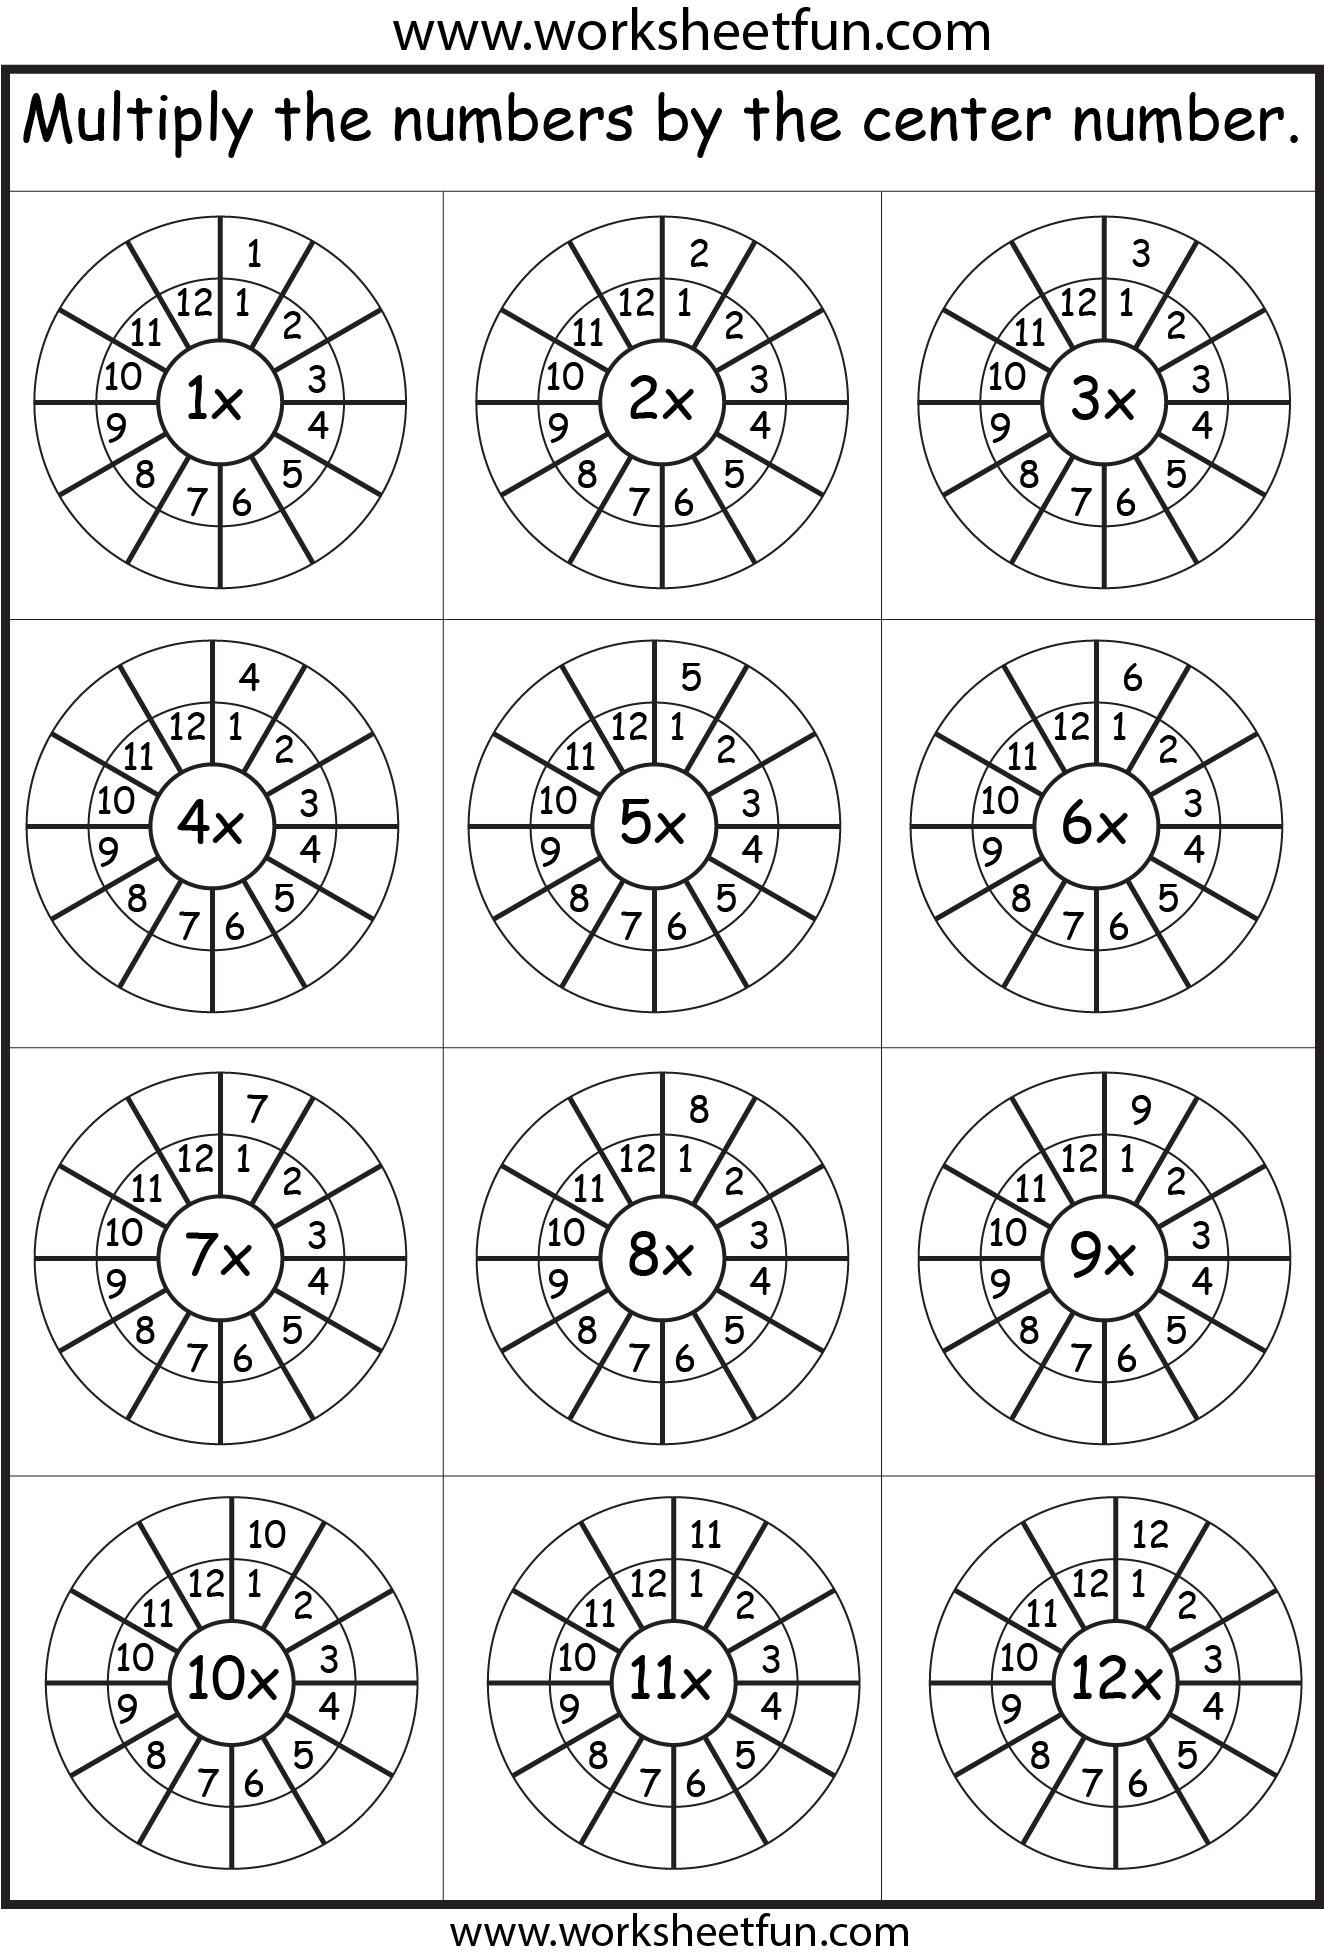 Amazing Number Of Free Worksheets! Some Plain And Some Cute